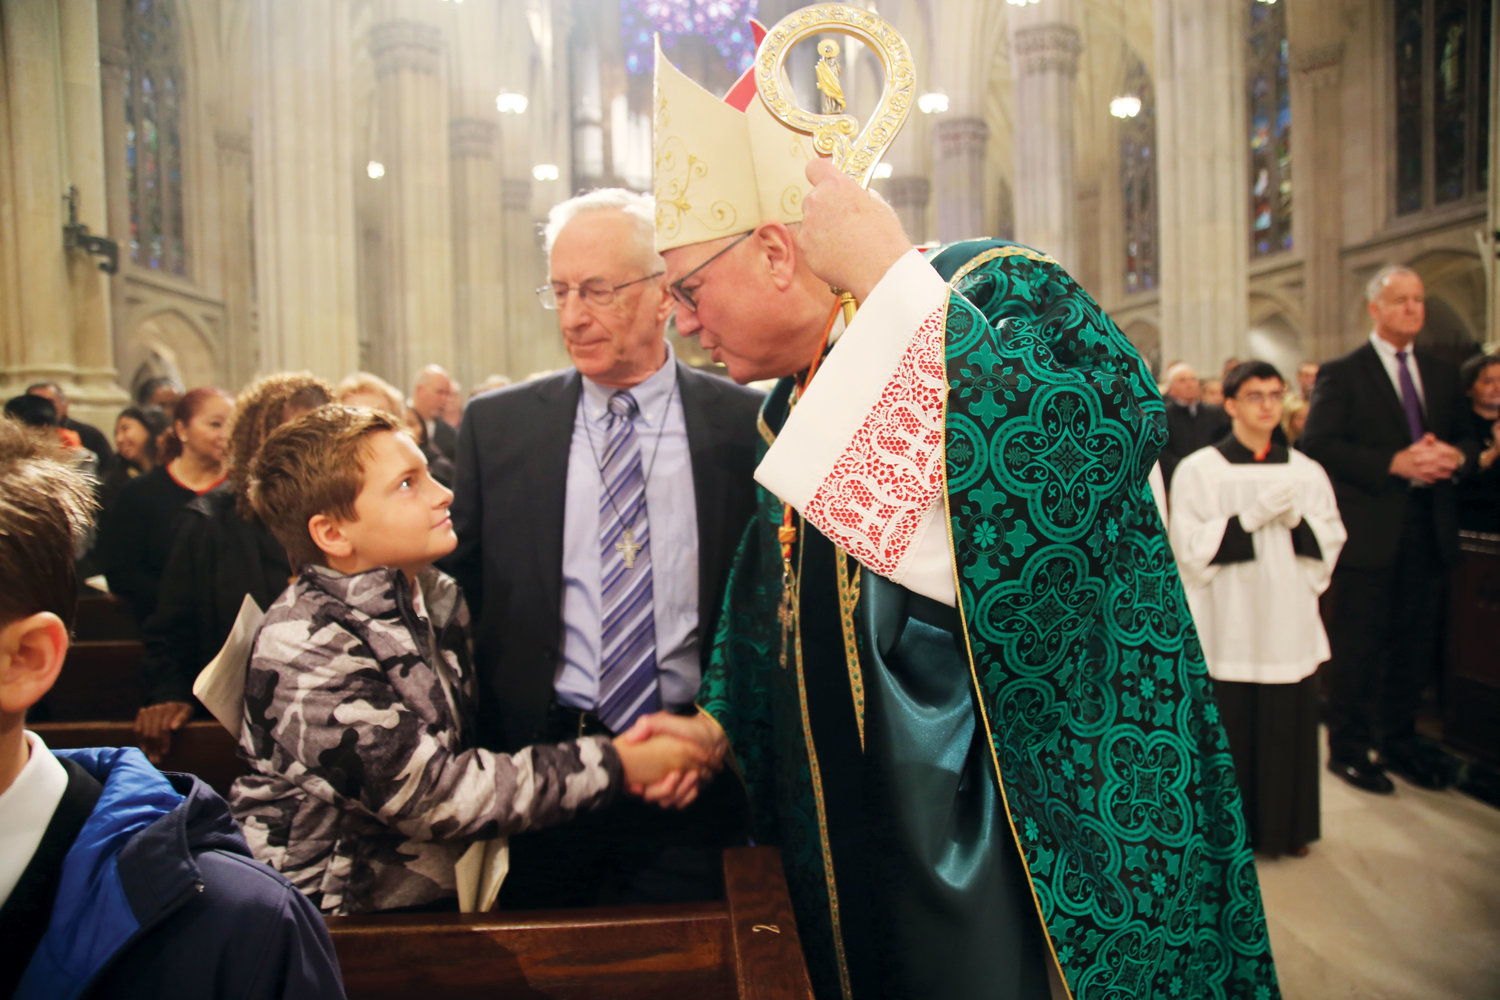 Cardinal Dolan shakes the hand of Maddox Elbert, grandson of Tom Scheuring, center, at Mass at St. Patrick's Cathedral on World Mission Sunday, Oct. 21. Tom Scheuring and his late wife, Lyn, founded LAMP Ministries (Lay Apostolic Ministries with the Poor) 37 years ago to serve the poor through Catholic evangelization.